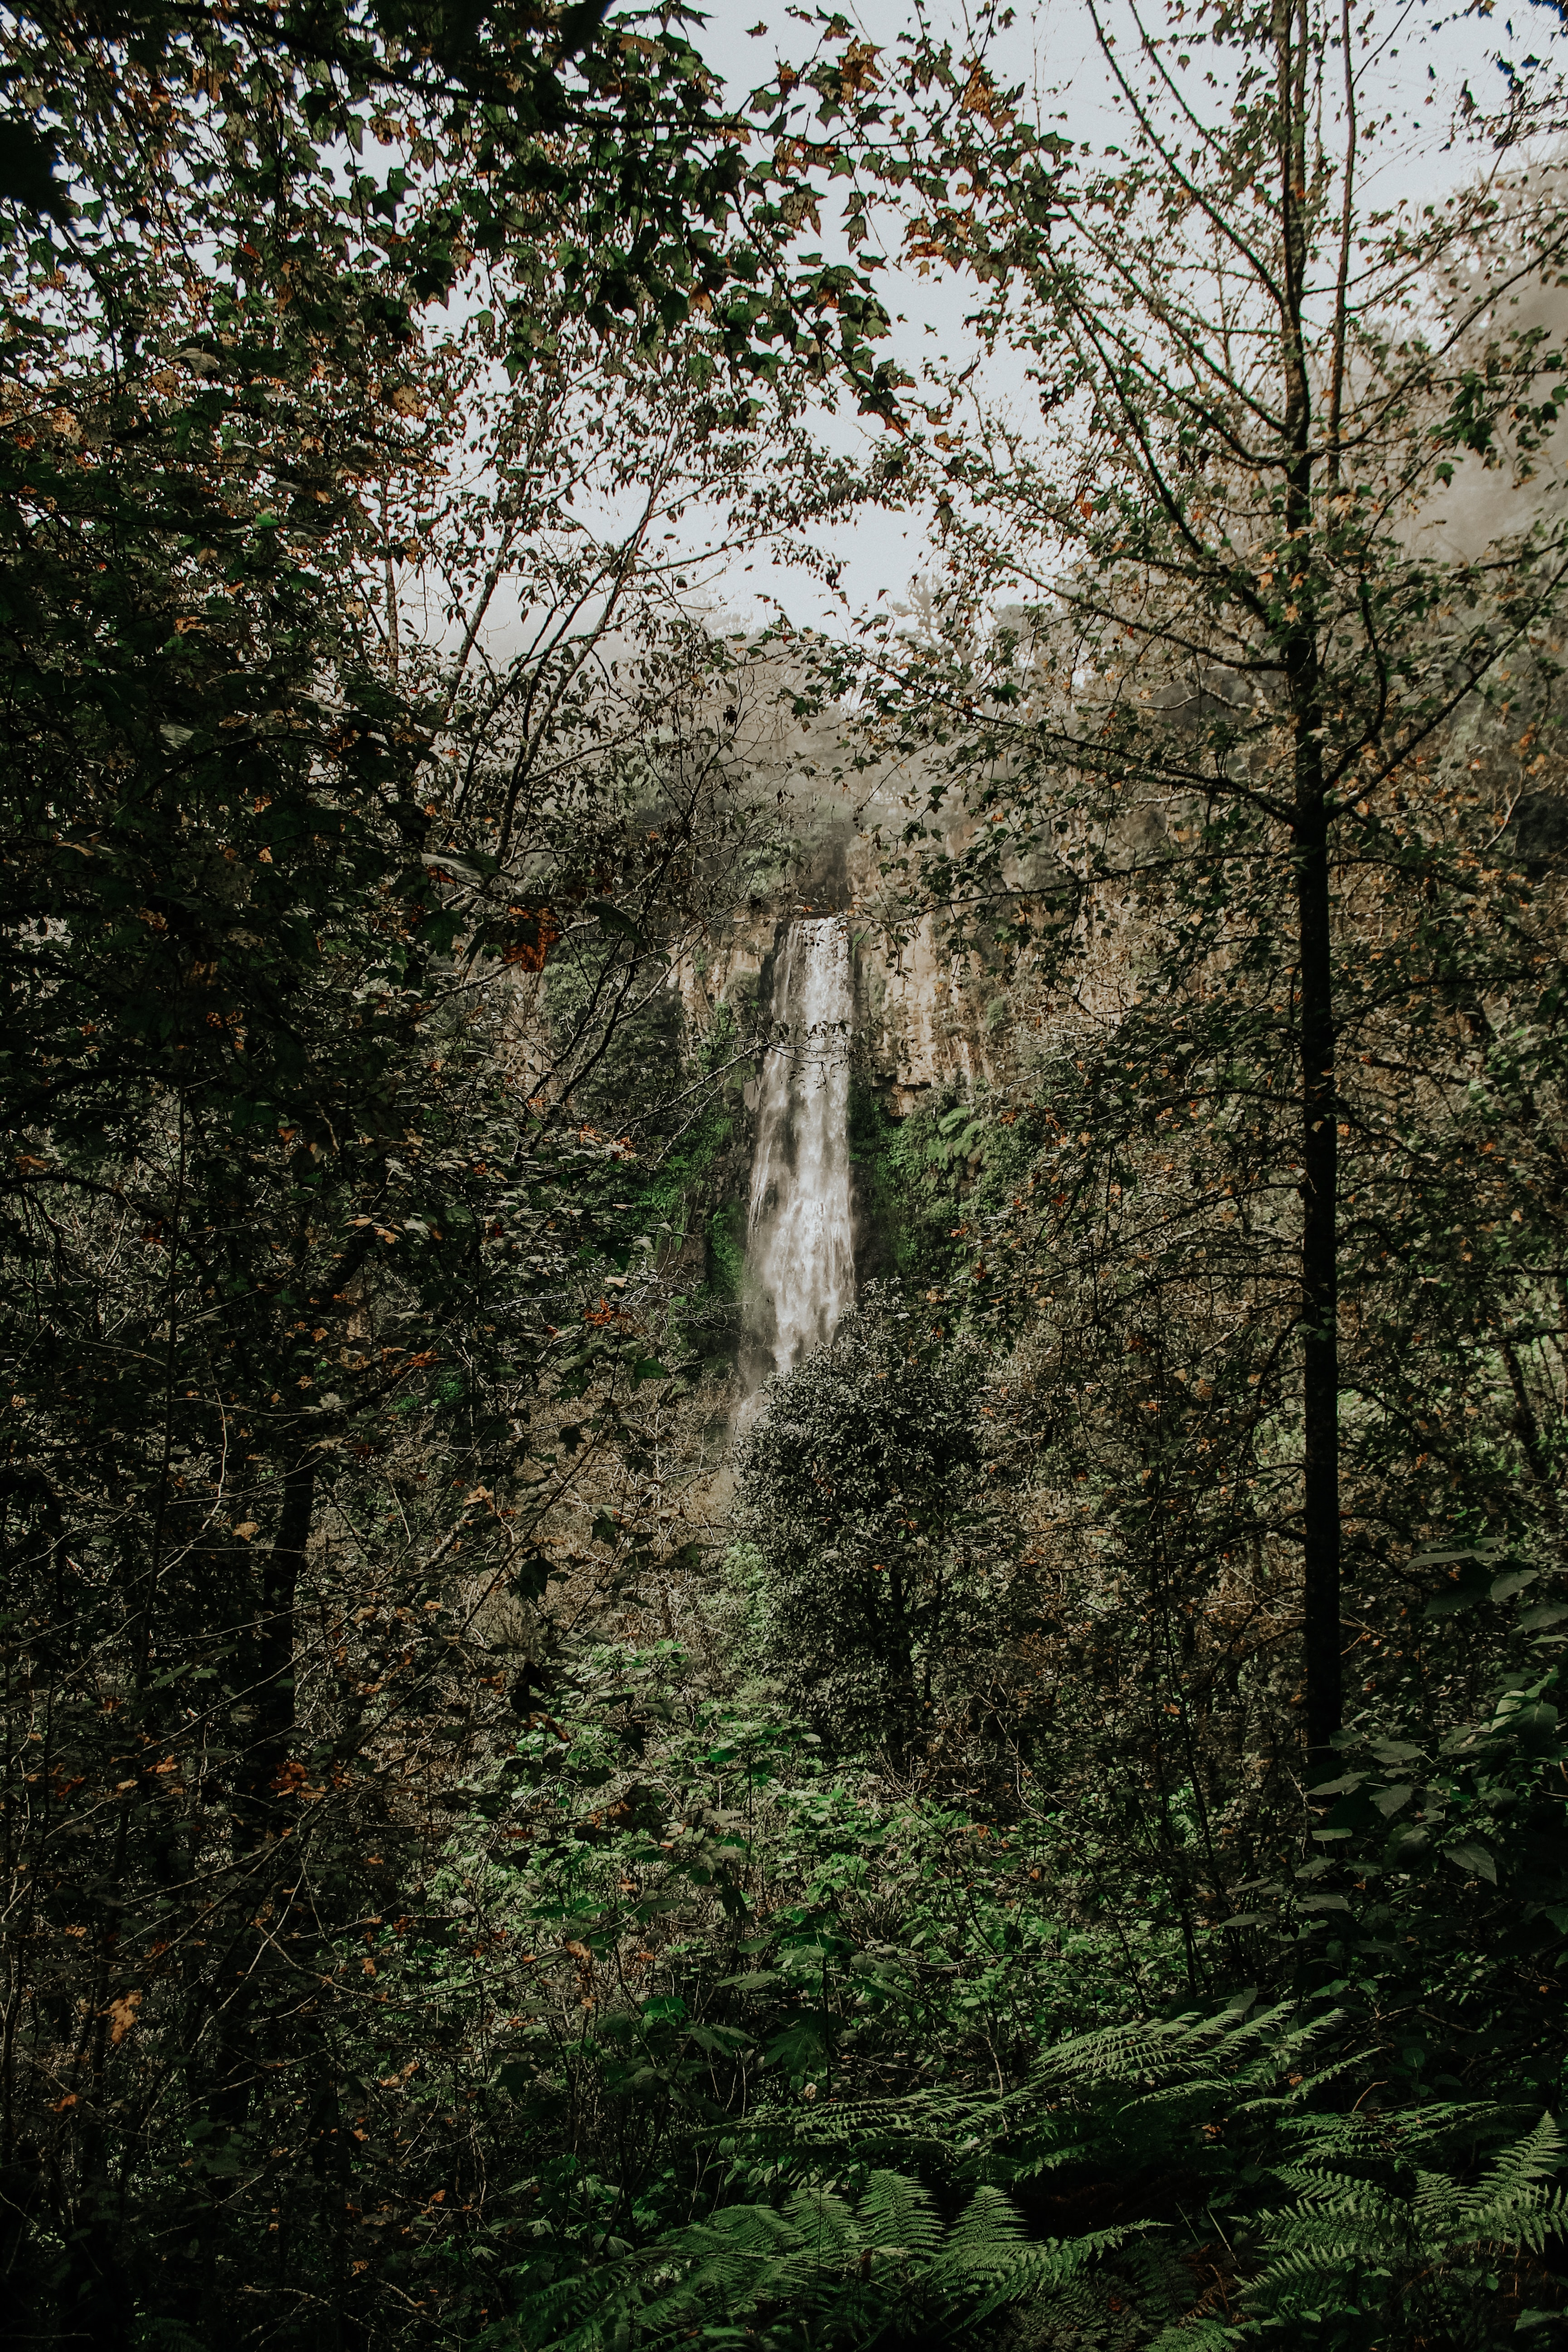 waterfalls by the forest on daylight